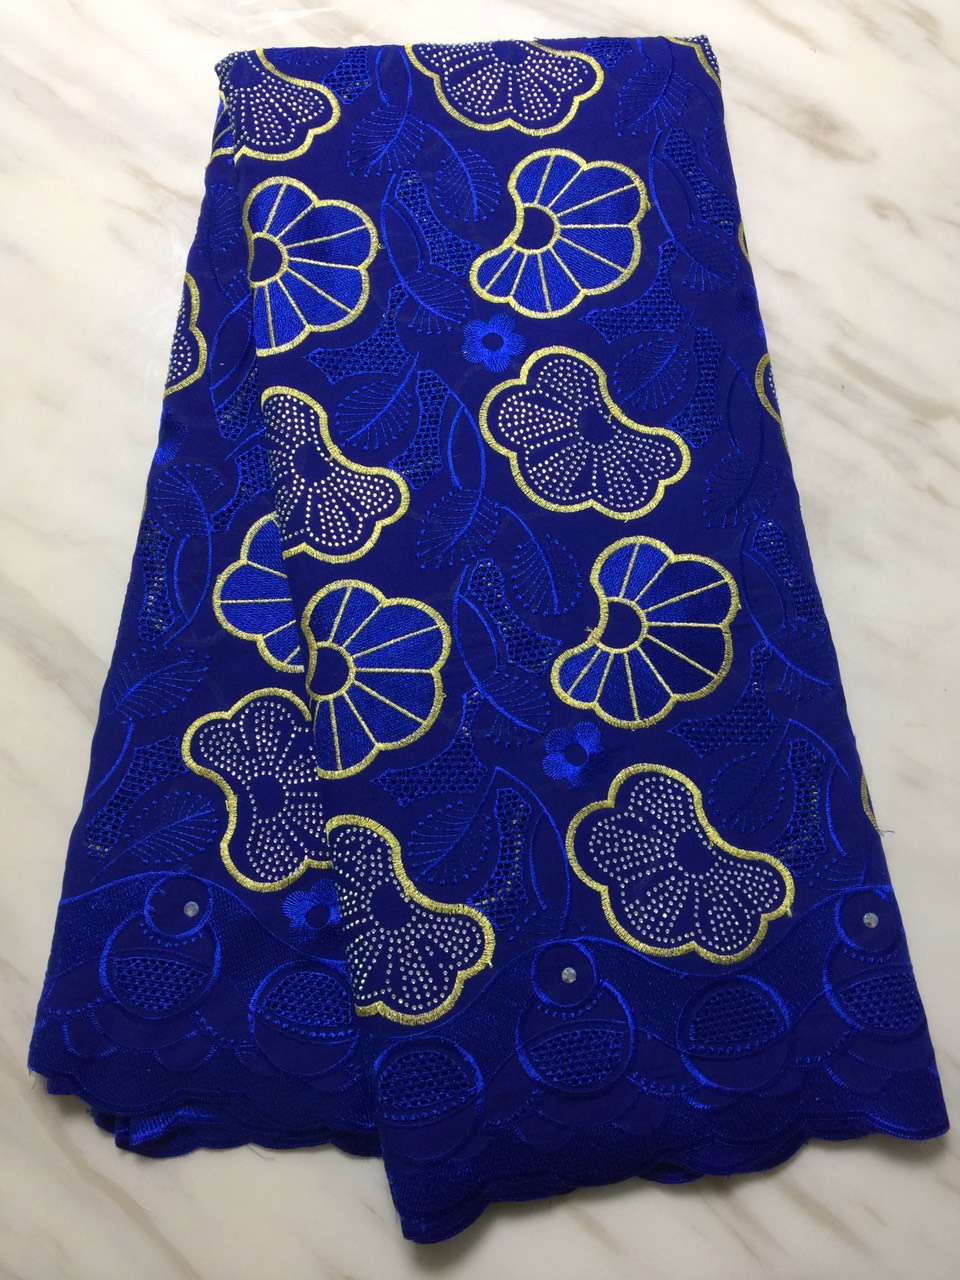 African Lace Fabric 2018 High Quality Swiss Voile Lace In Switzerland African Lace Materials African Dresses For Women (16L-12